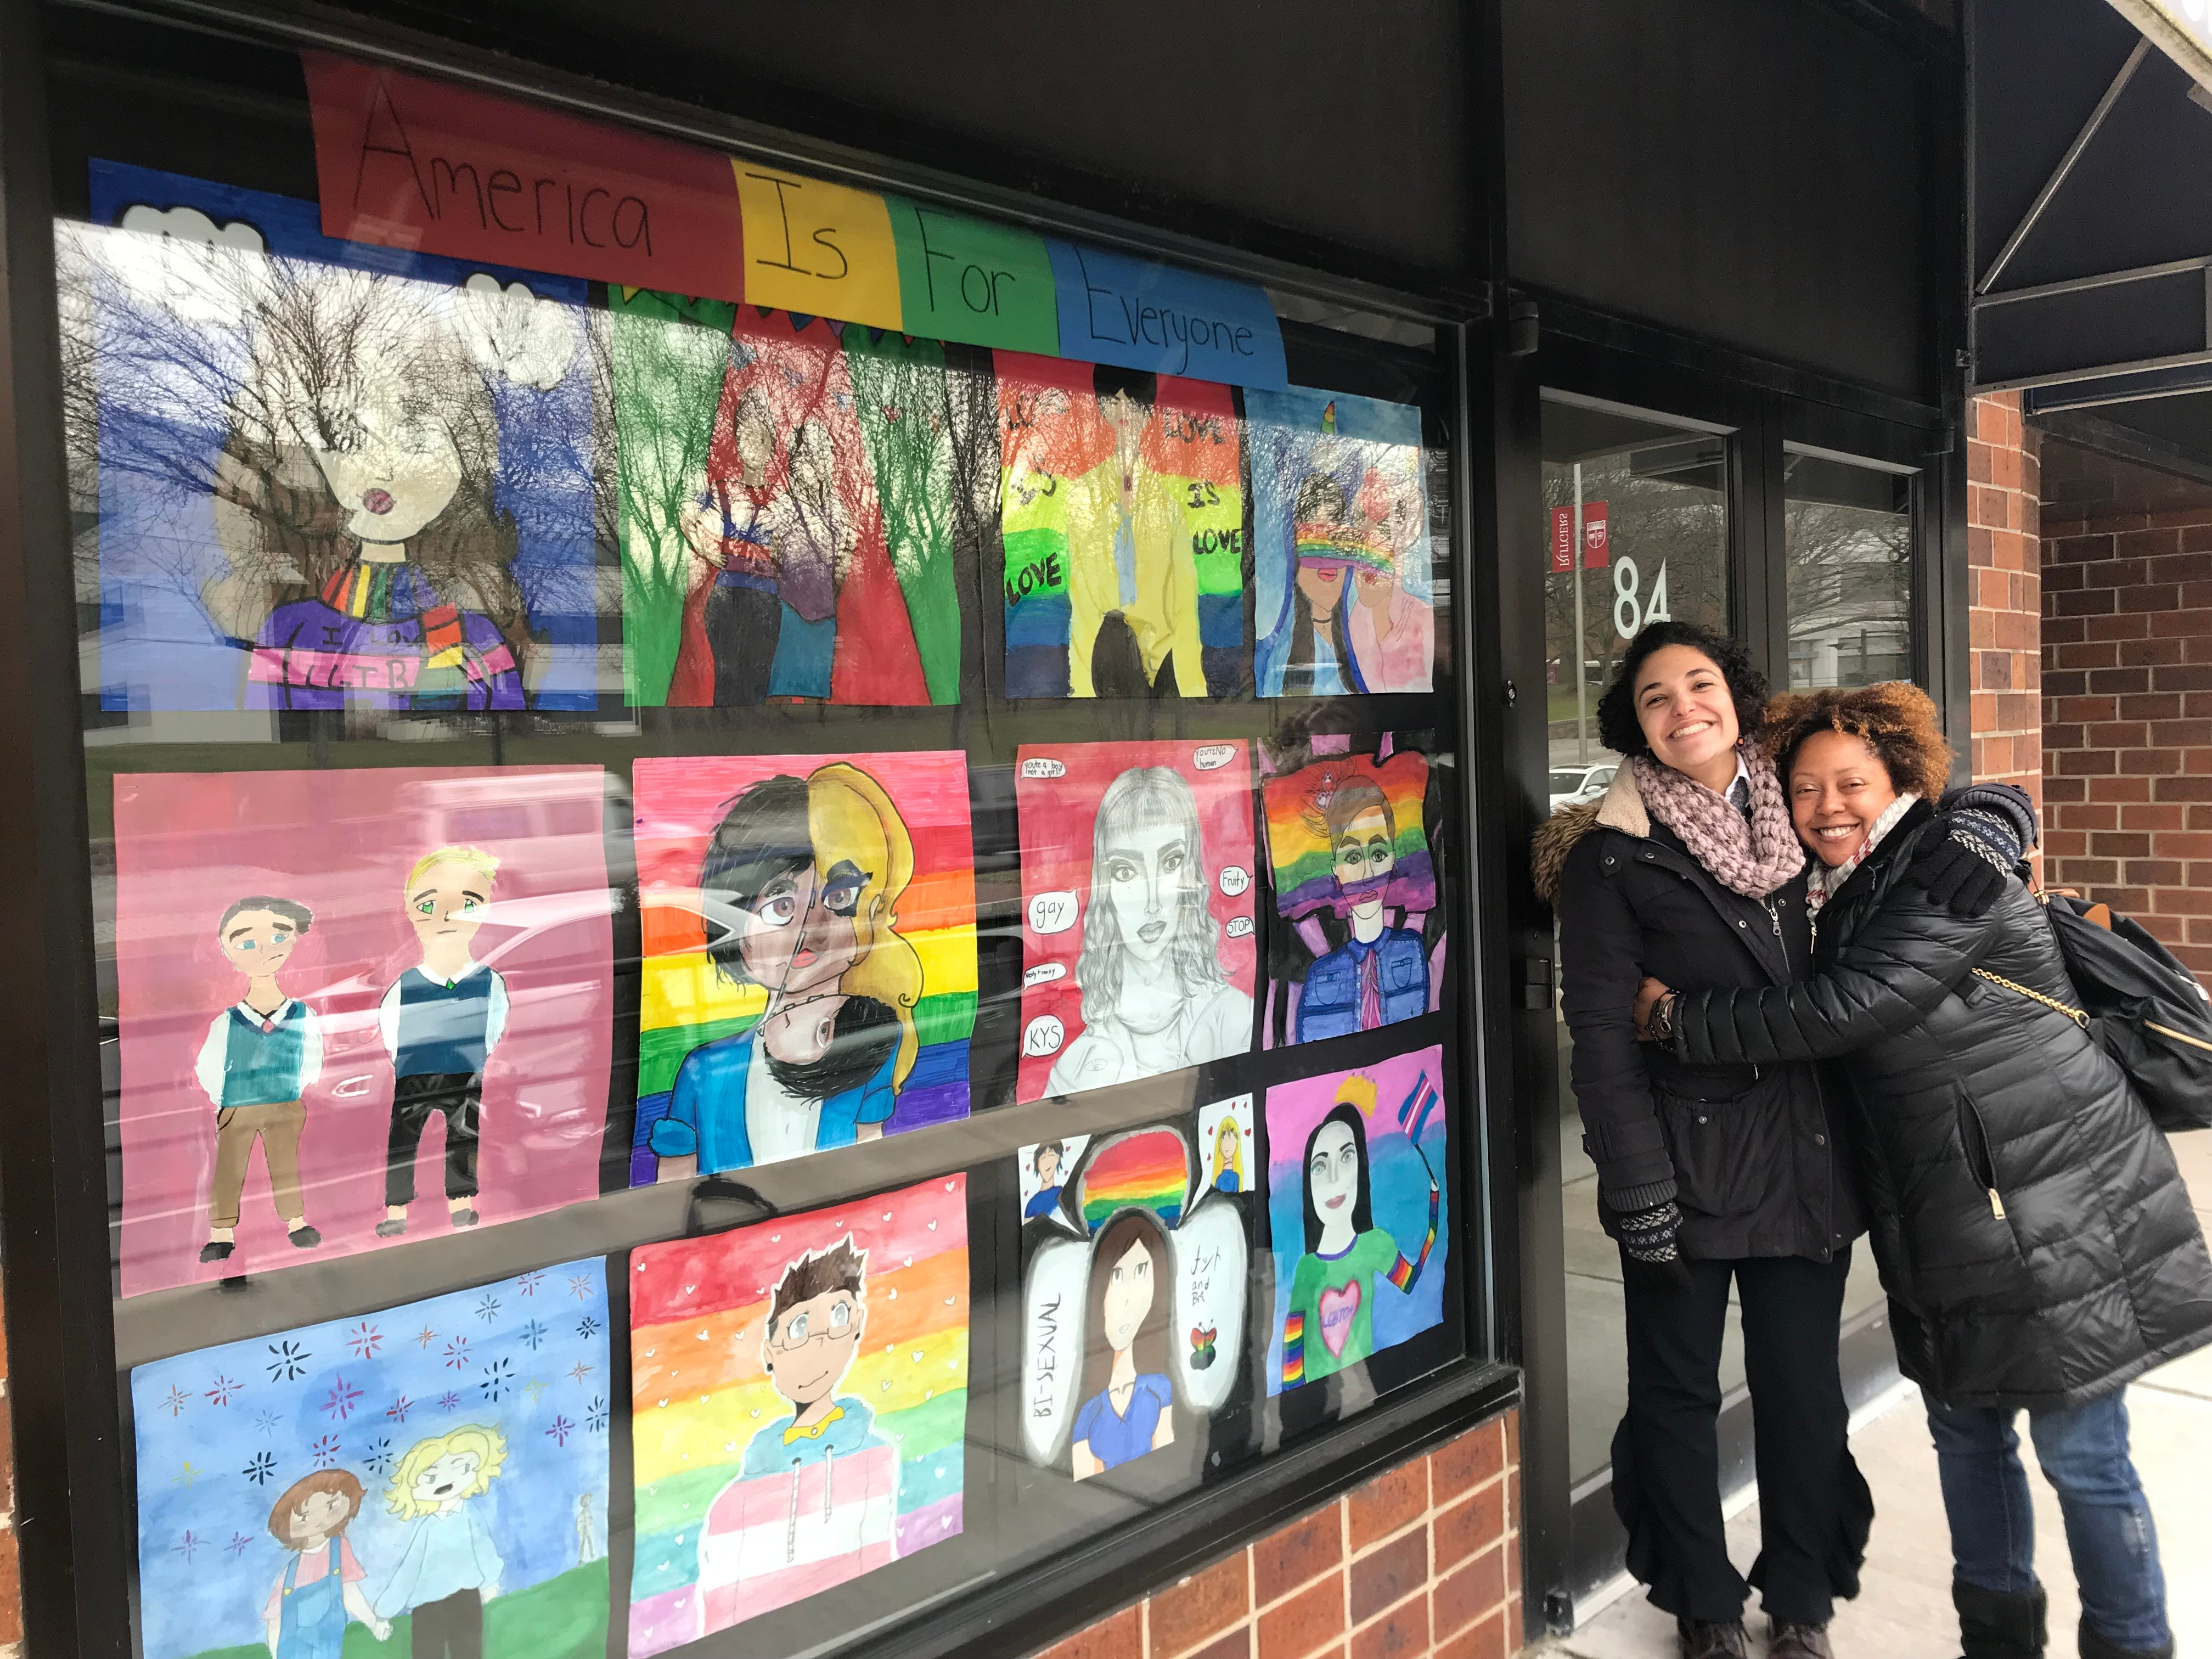 "New Brunswick Cultural Center's Sarah Ferreira and Tracey O'Reggio Clarke, two of the organizers of Windows of Understanding, are pictured with New Brunswick Middle School Art Club's ""America is for Everyone"" at Voices of 9/11 on Albany Street in New Brunswick."